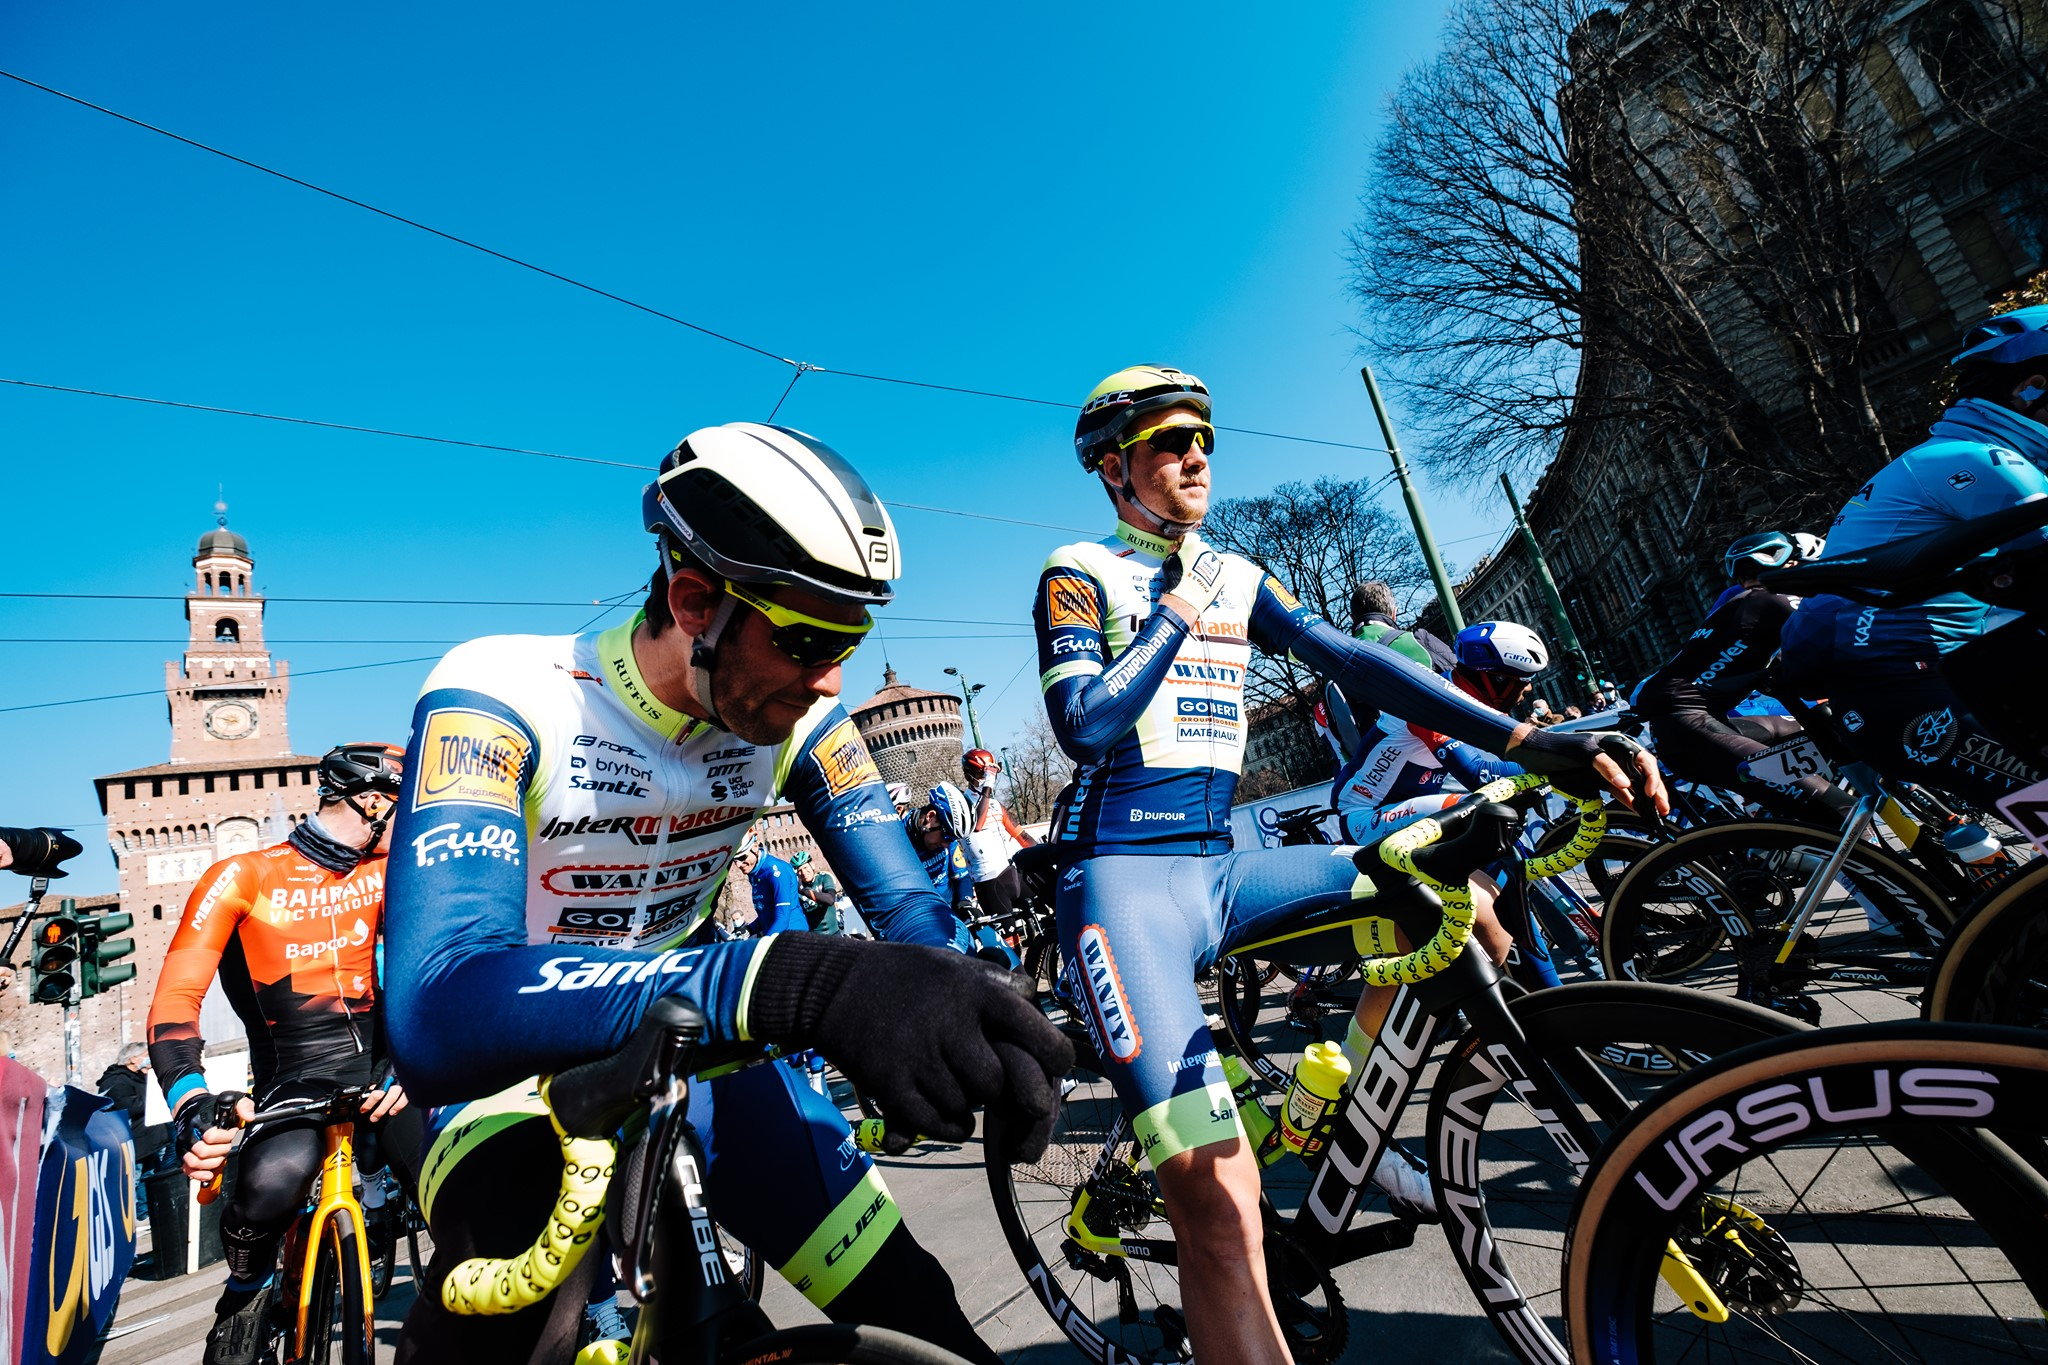 Parts of highlights from Intermarché-Wanty-Gobert in #milanosanremo